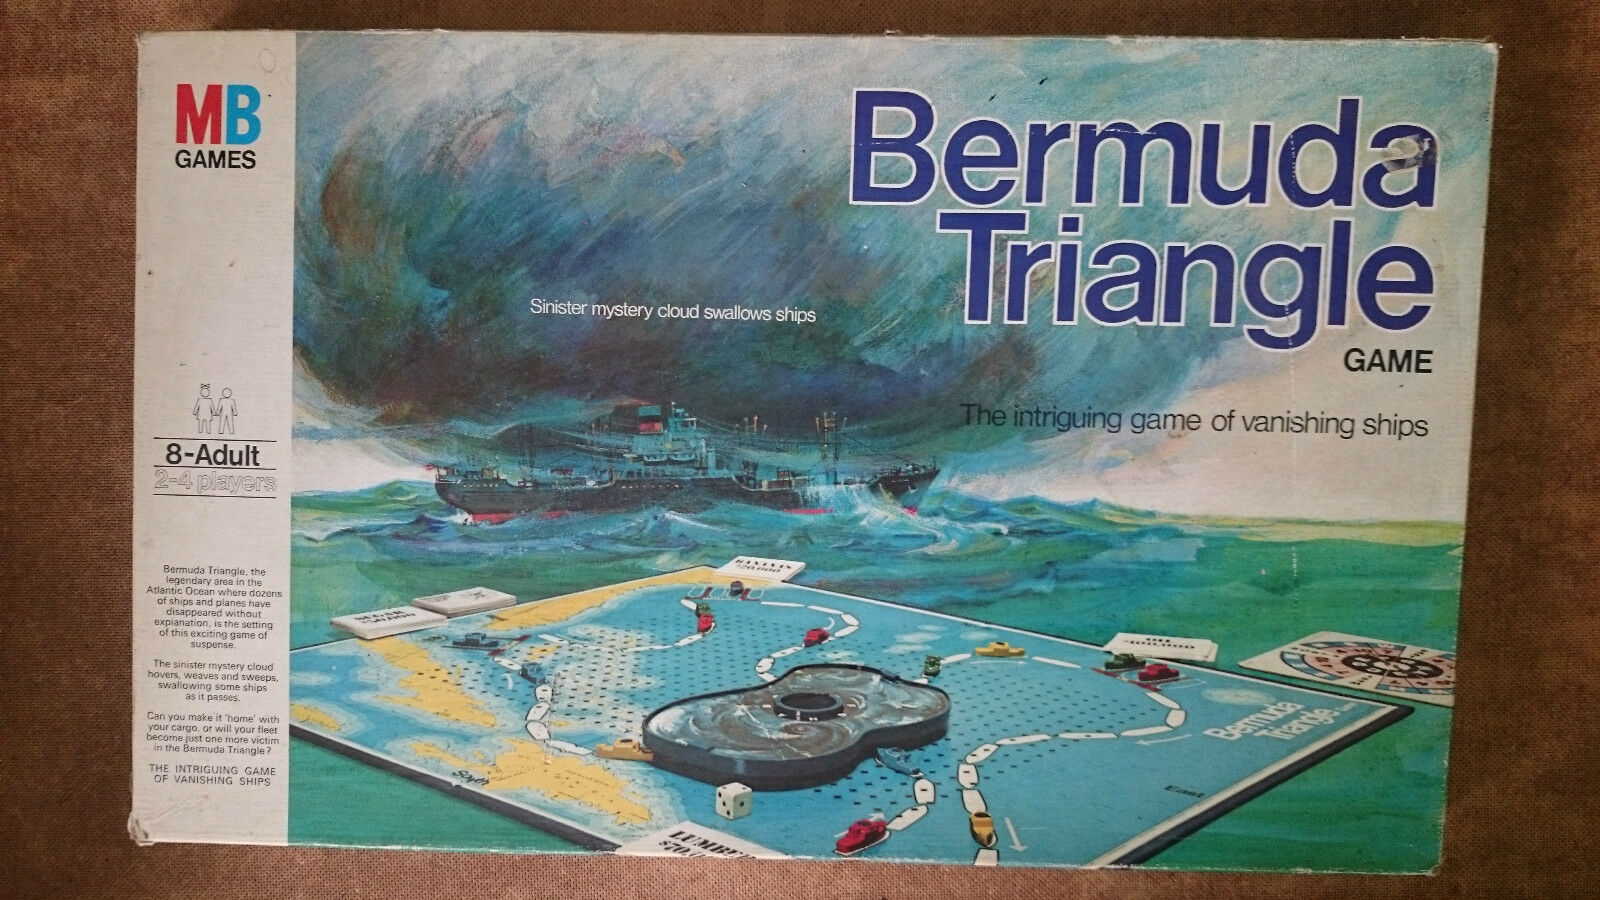 Bermuda Triangle   Game  by MB 1976